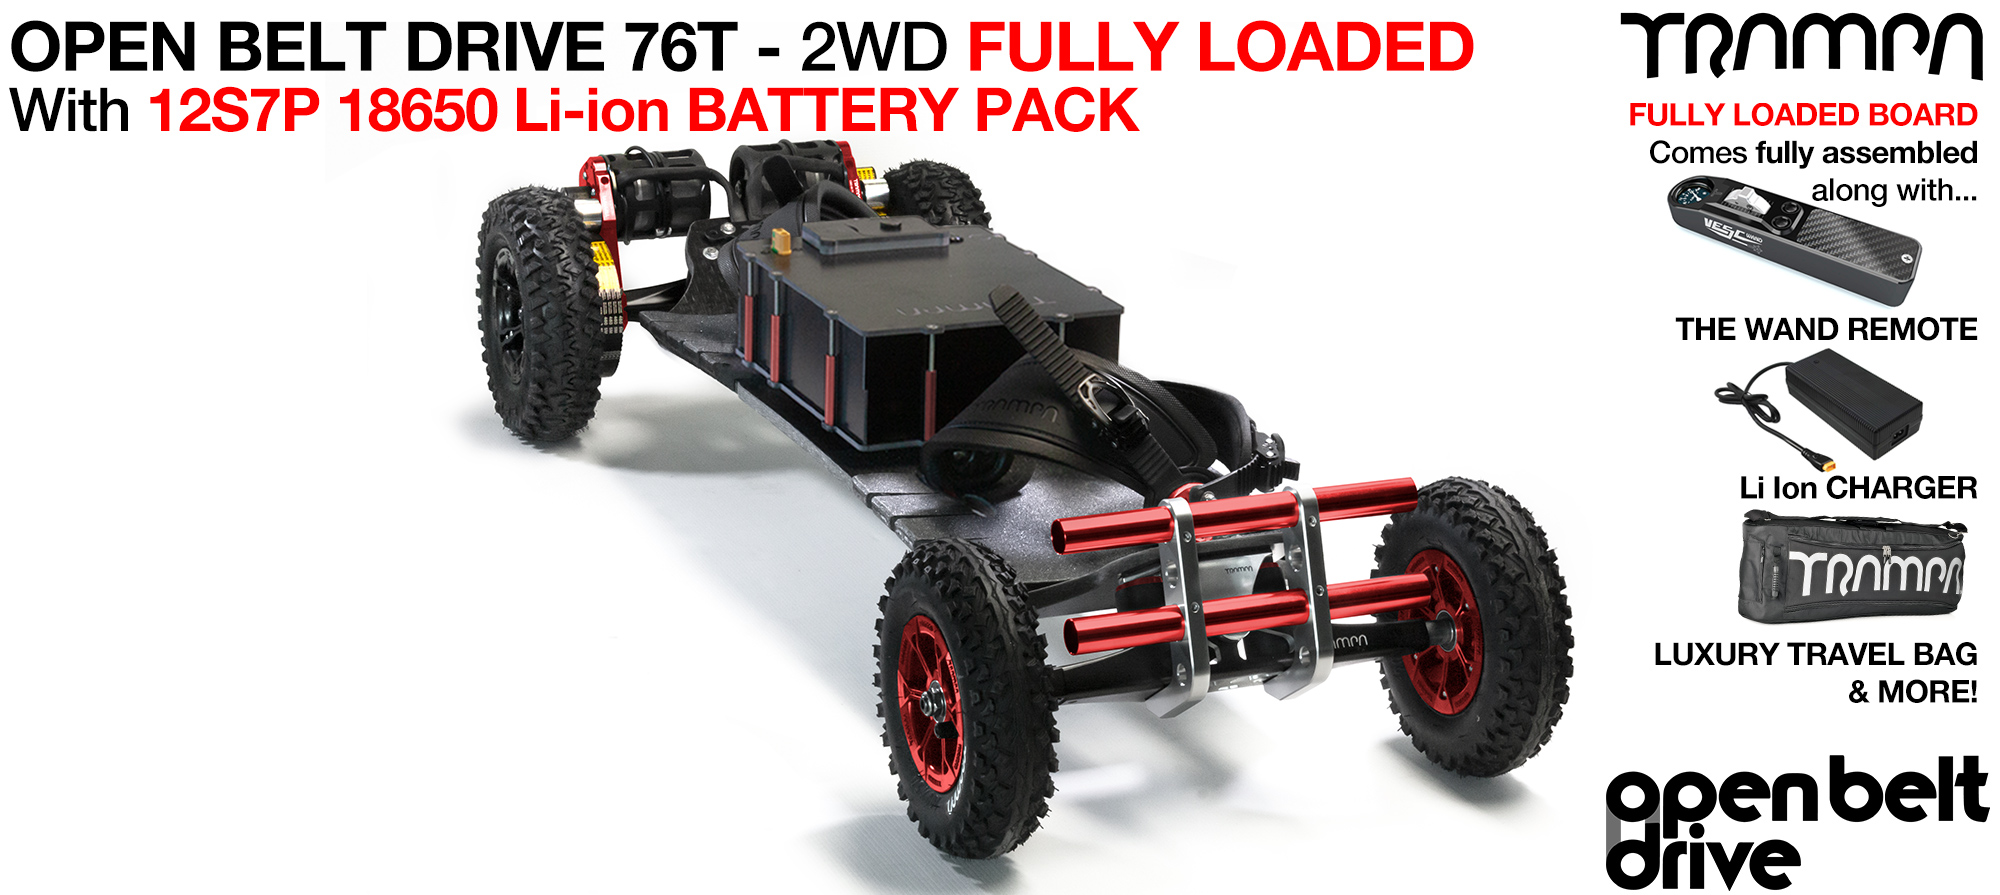 2WD 66T Open Belt Drive TRAMPA Electric Mountainboard with 9Inch Wheels & 76 Tooth Pulleys - LOADED 18650 Cell Pack